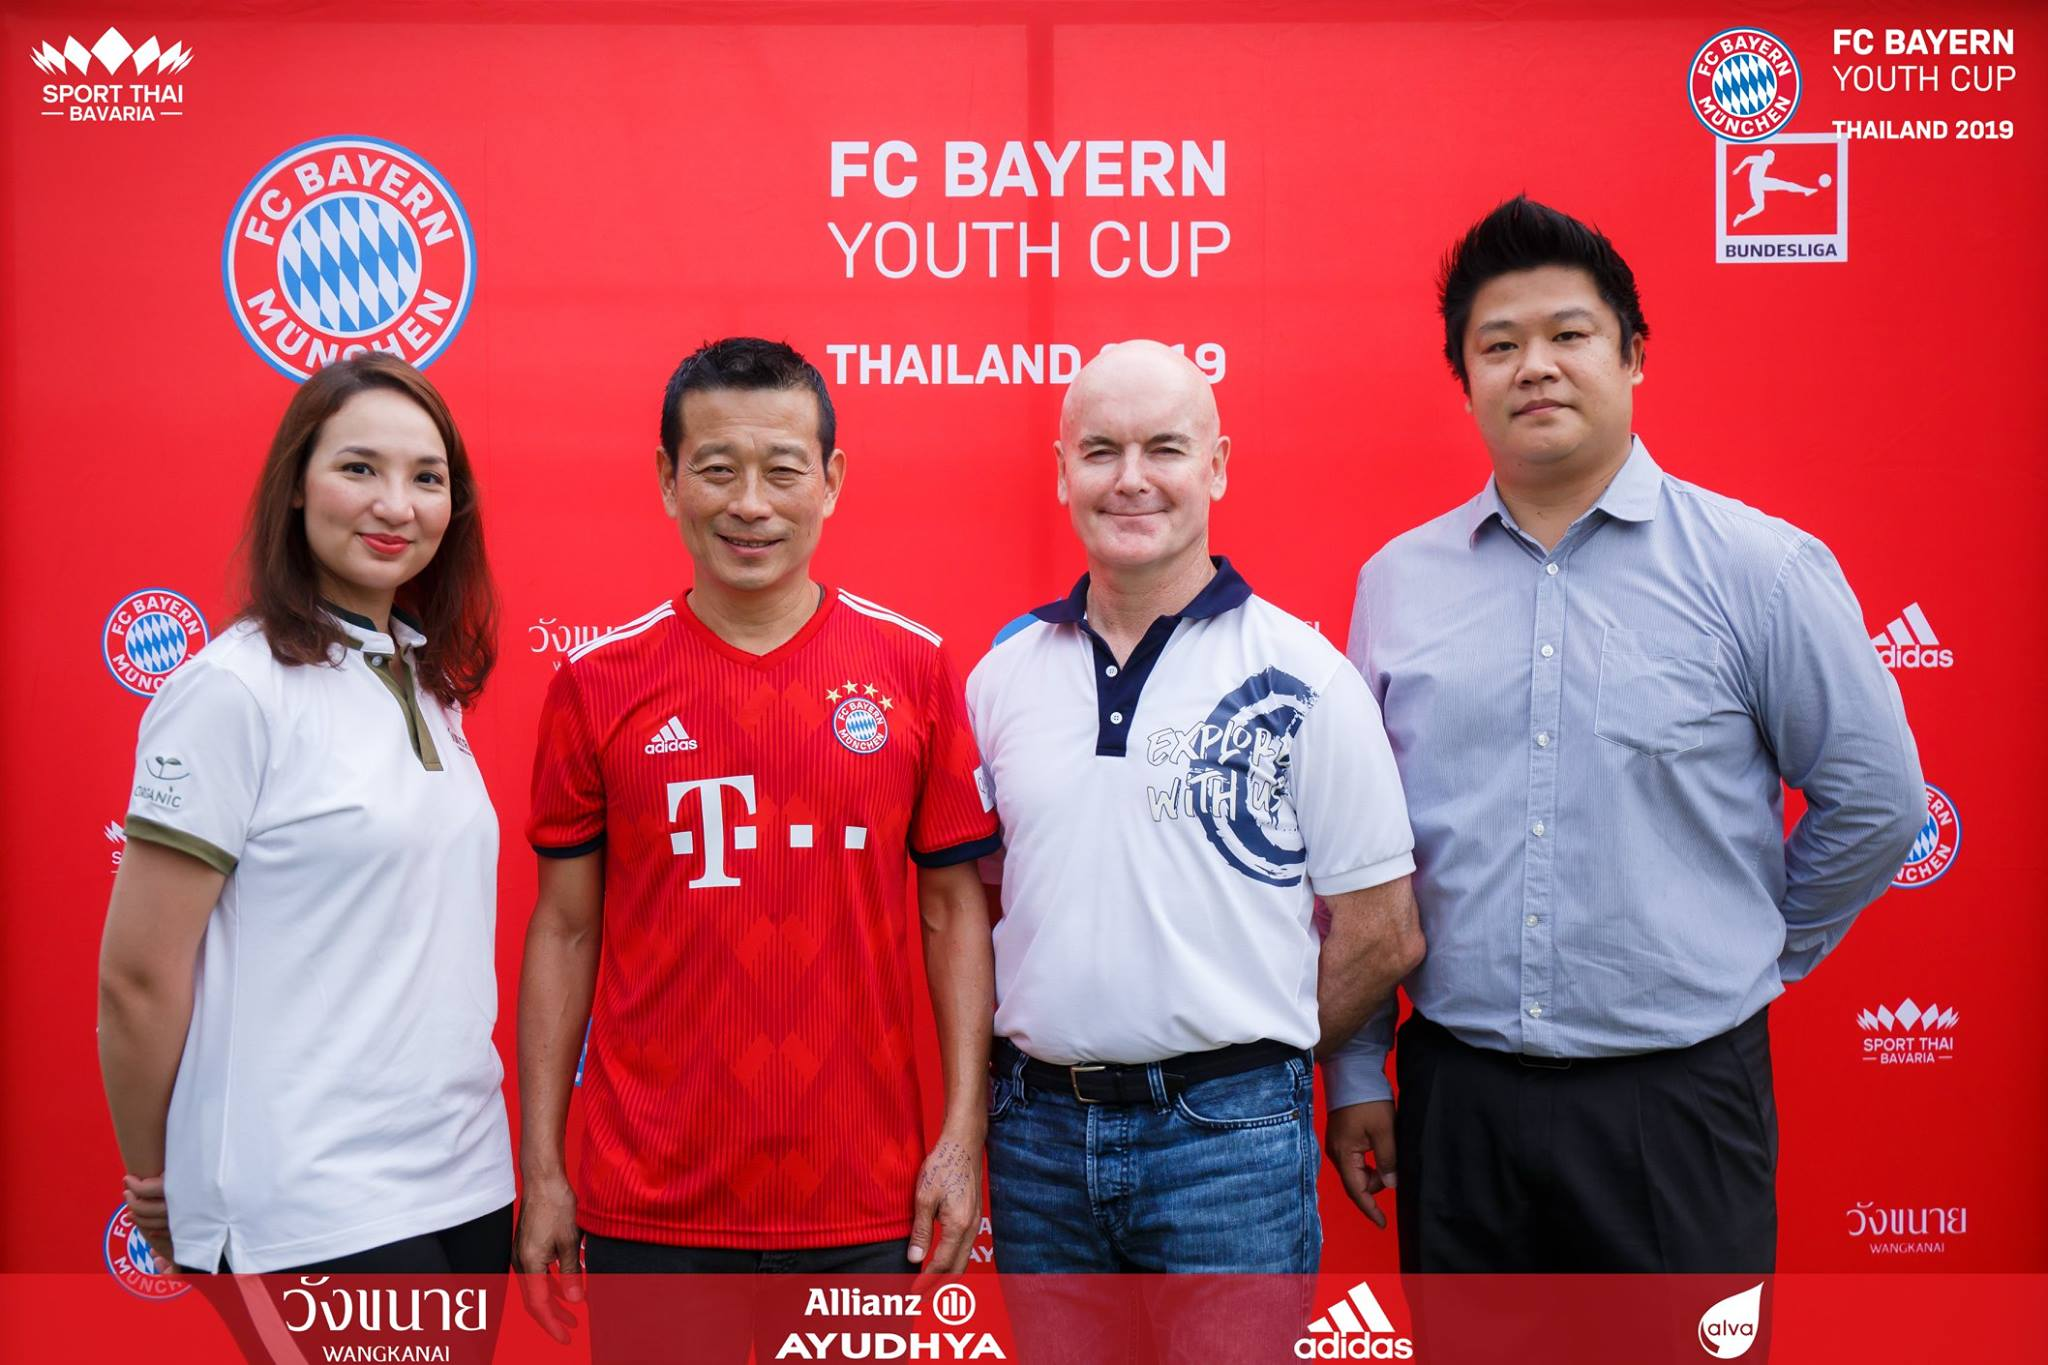 The image of the qualified match of the FC Bayern Youth Cup 2019 at Bangkok Thonburi University, Bangkok